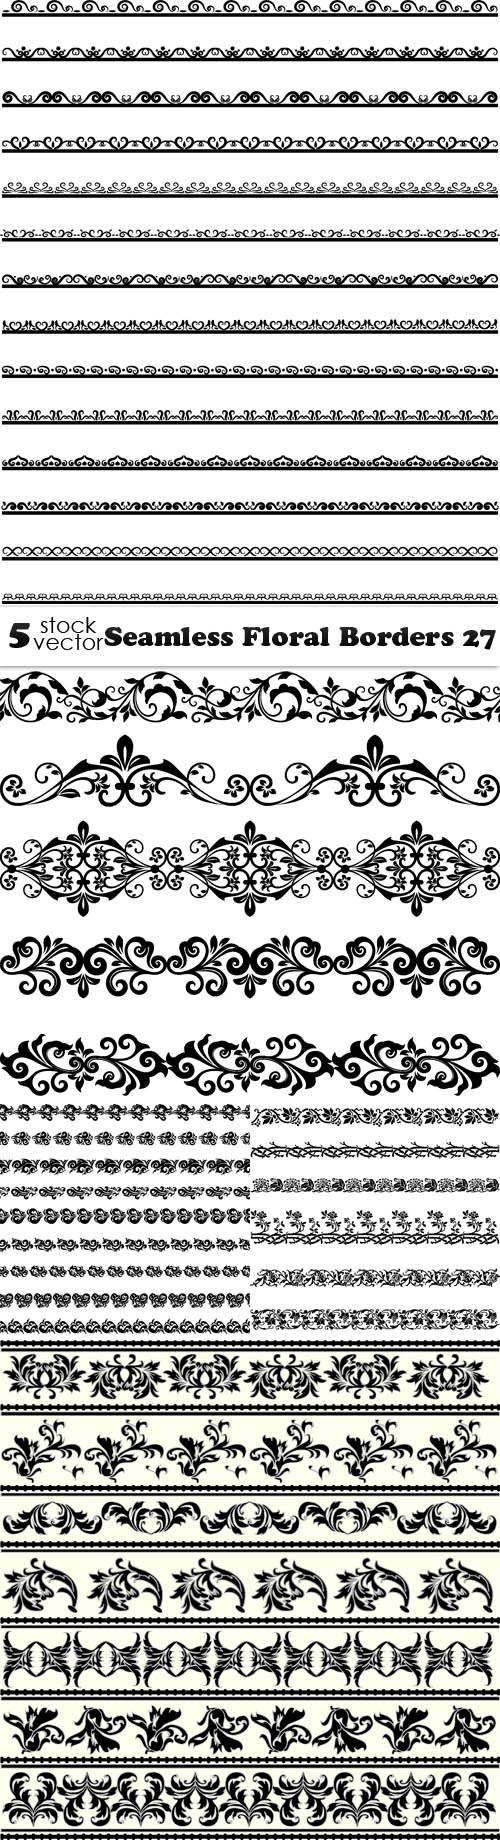 Vectors - Seamless Floral Borders 27